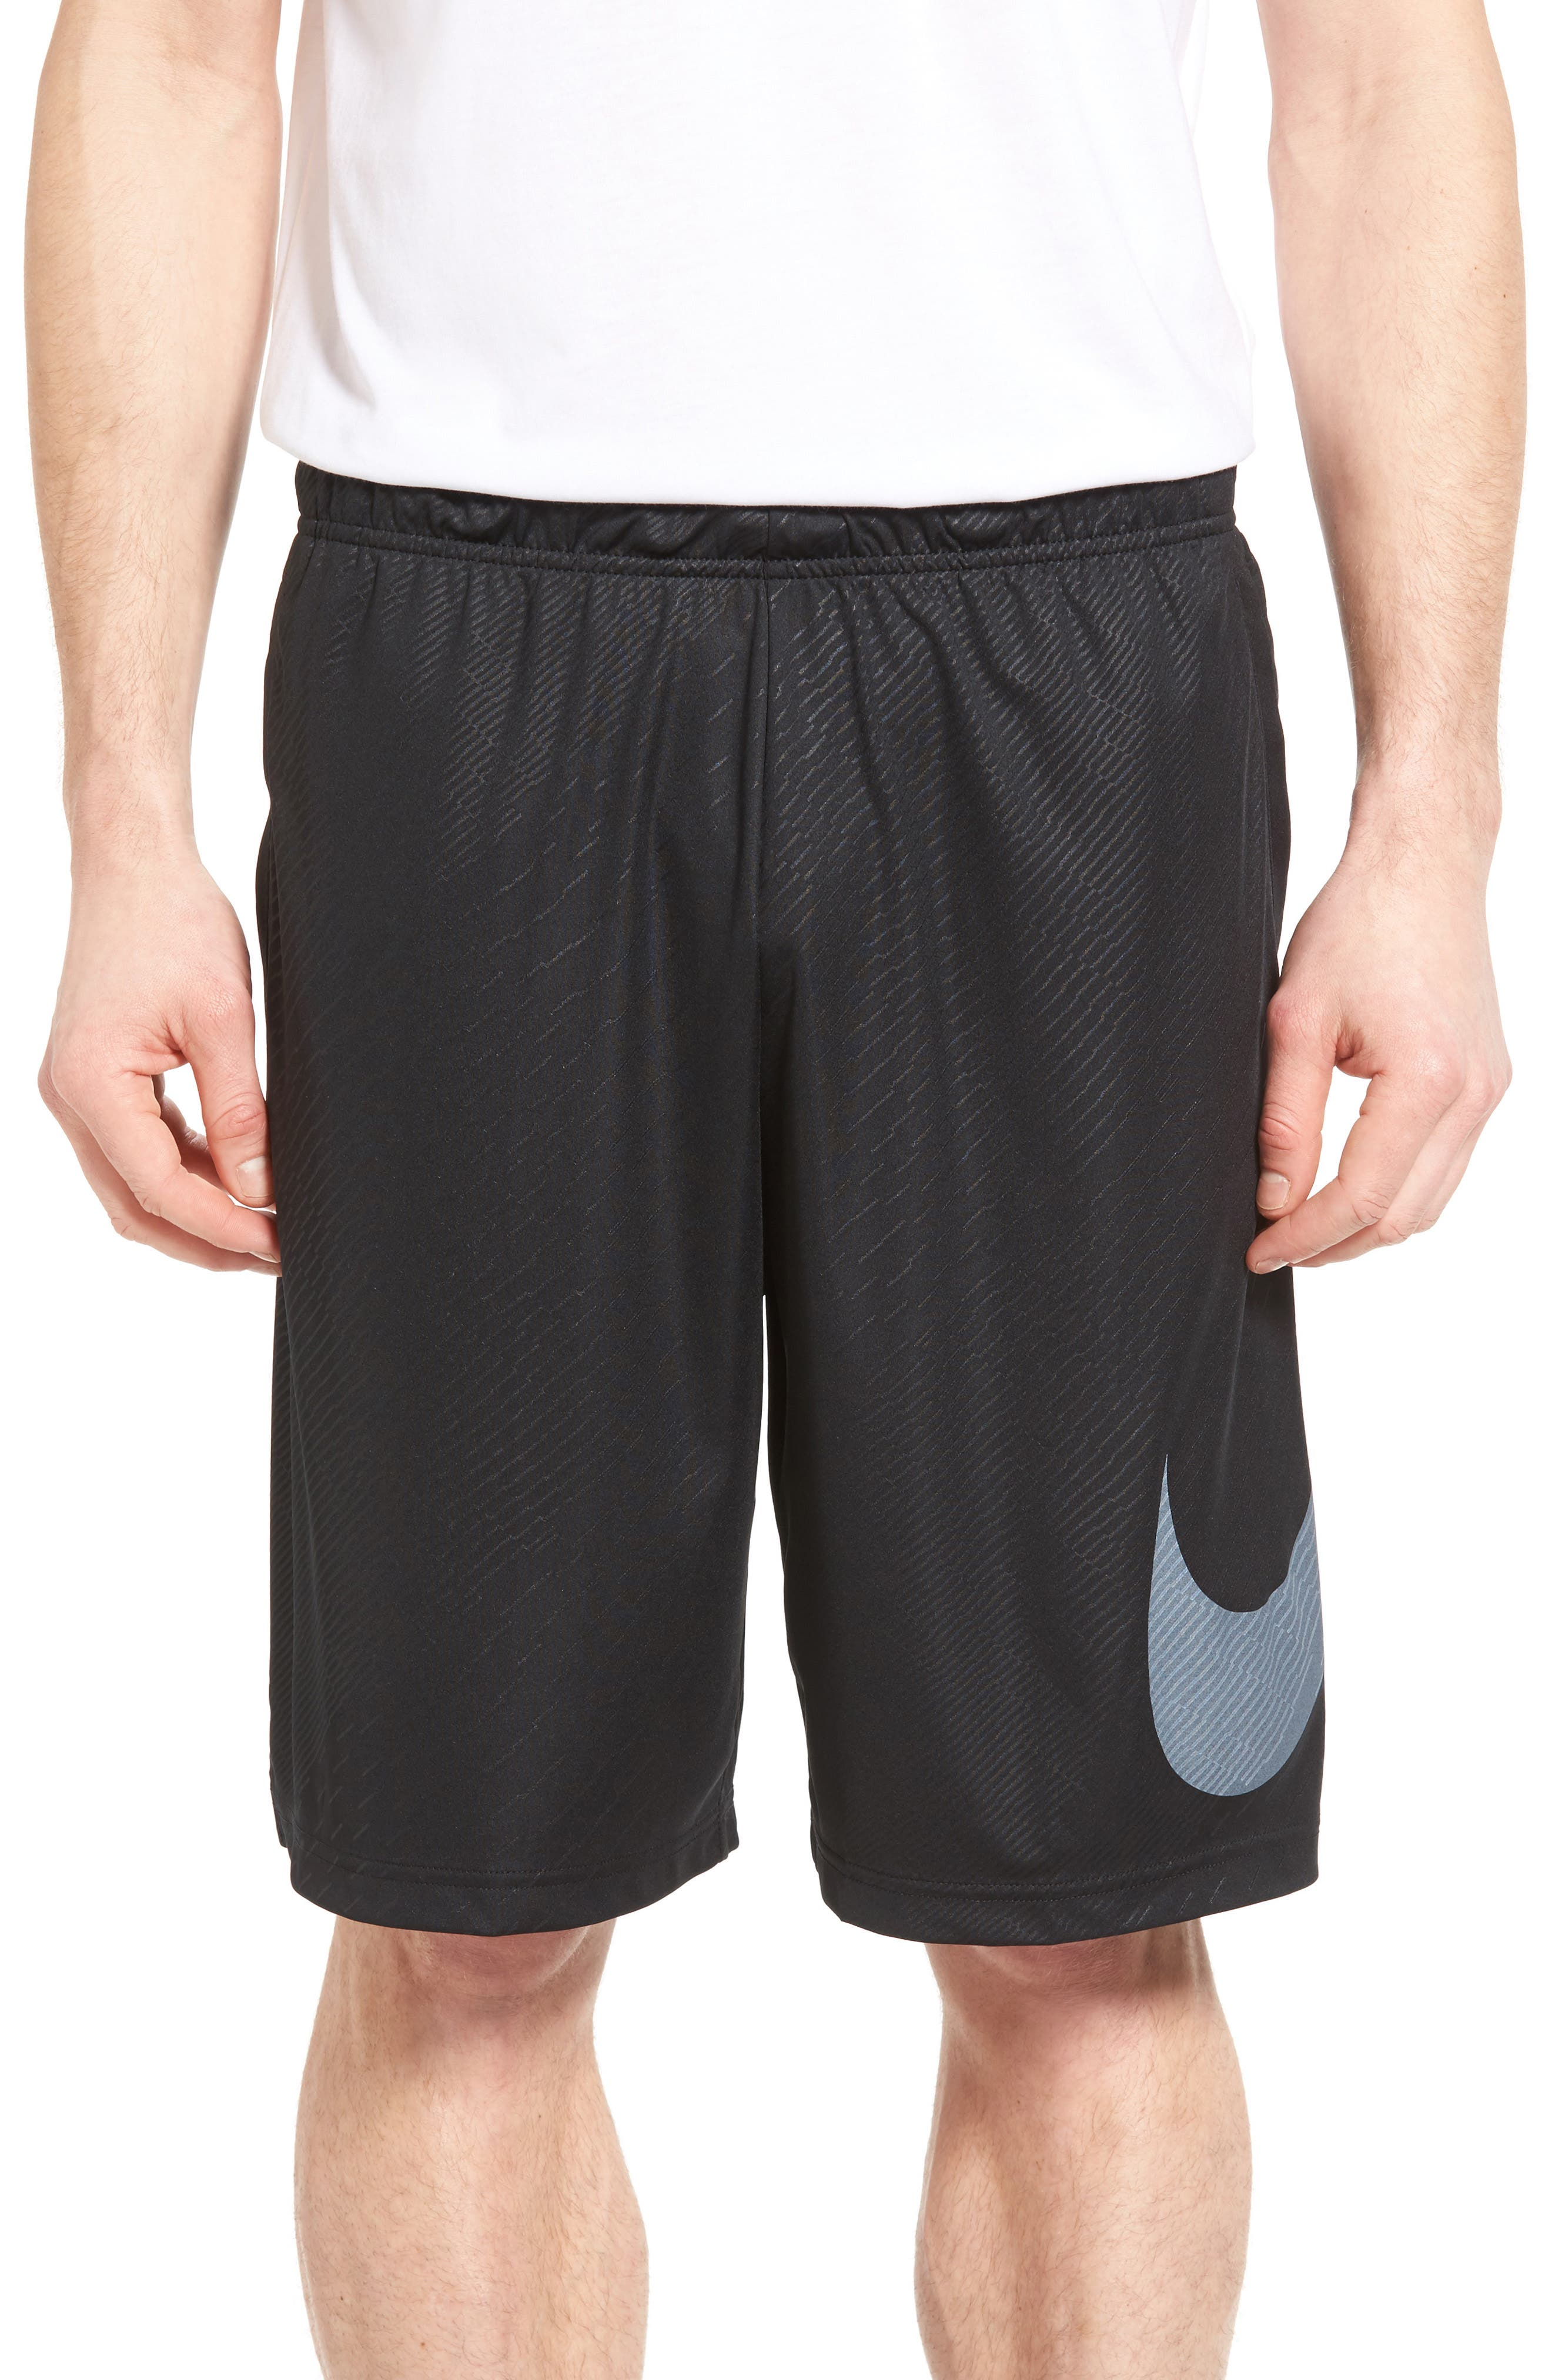 Dry Training Shorts,                         Main,                         color, 010